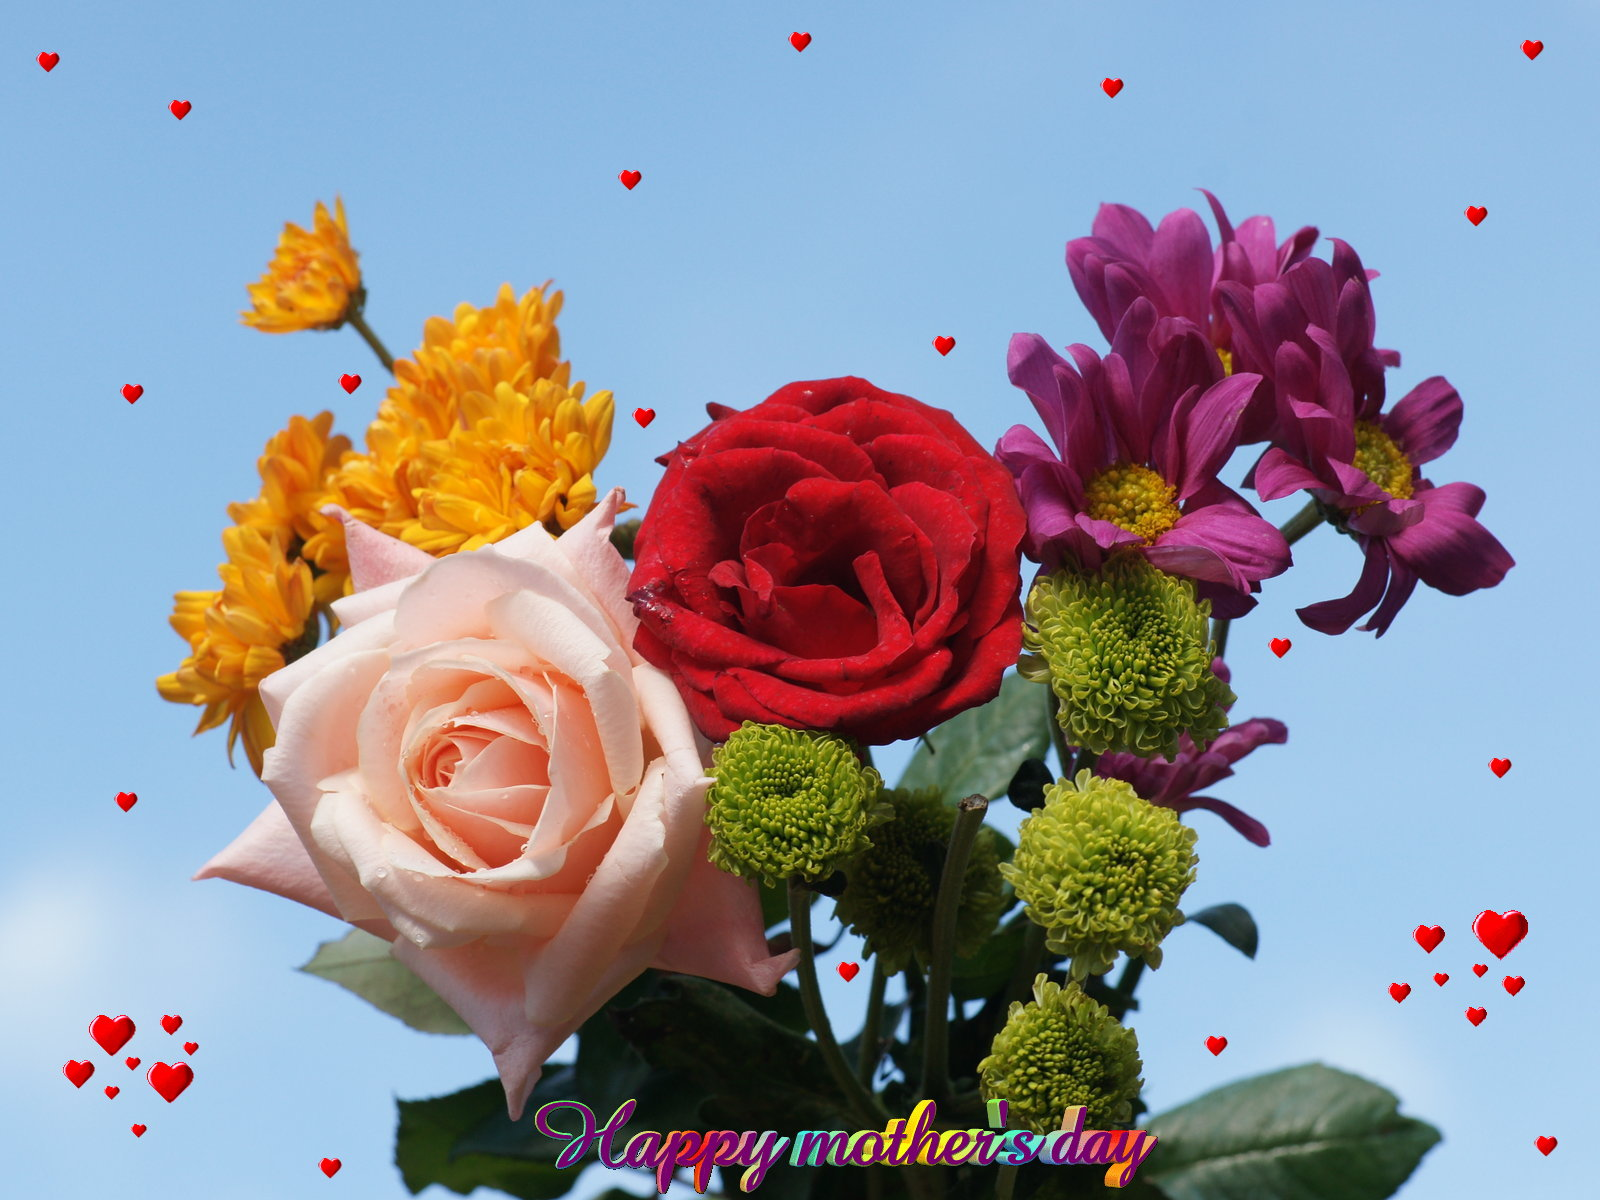 beautiful flowers hearts of love mother s day wallpapers 1600x1200